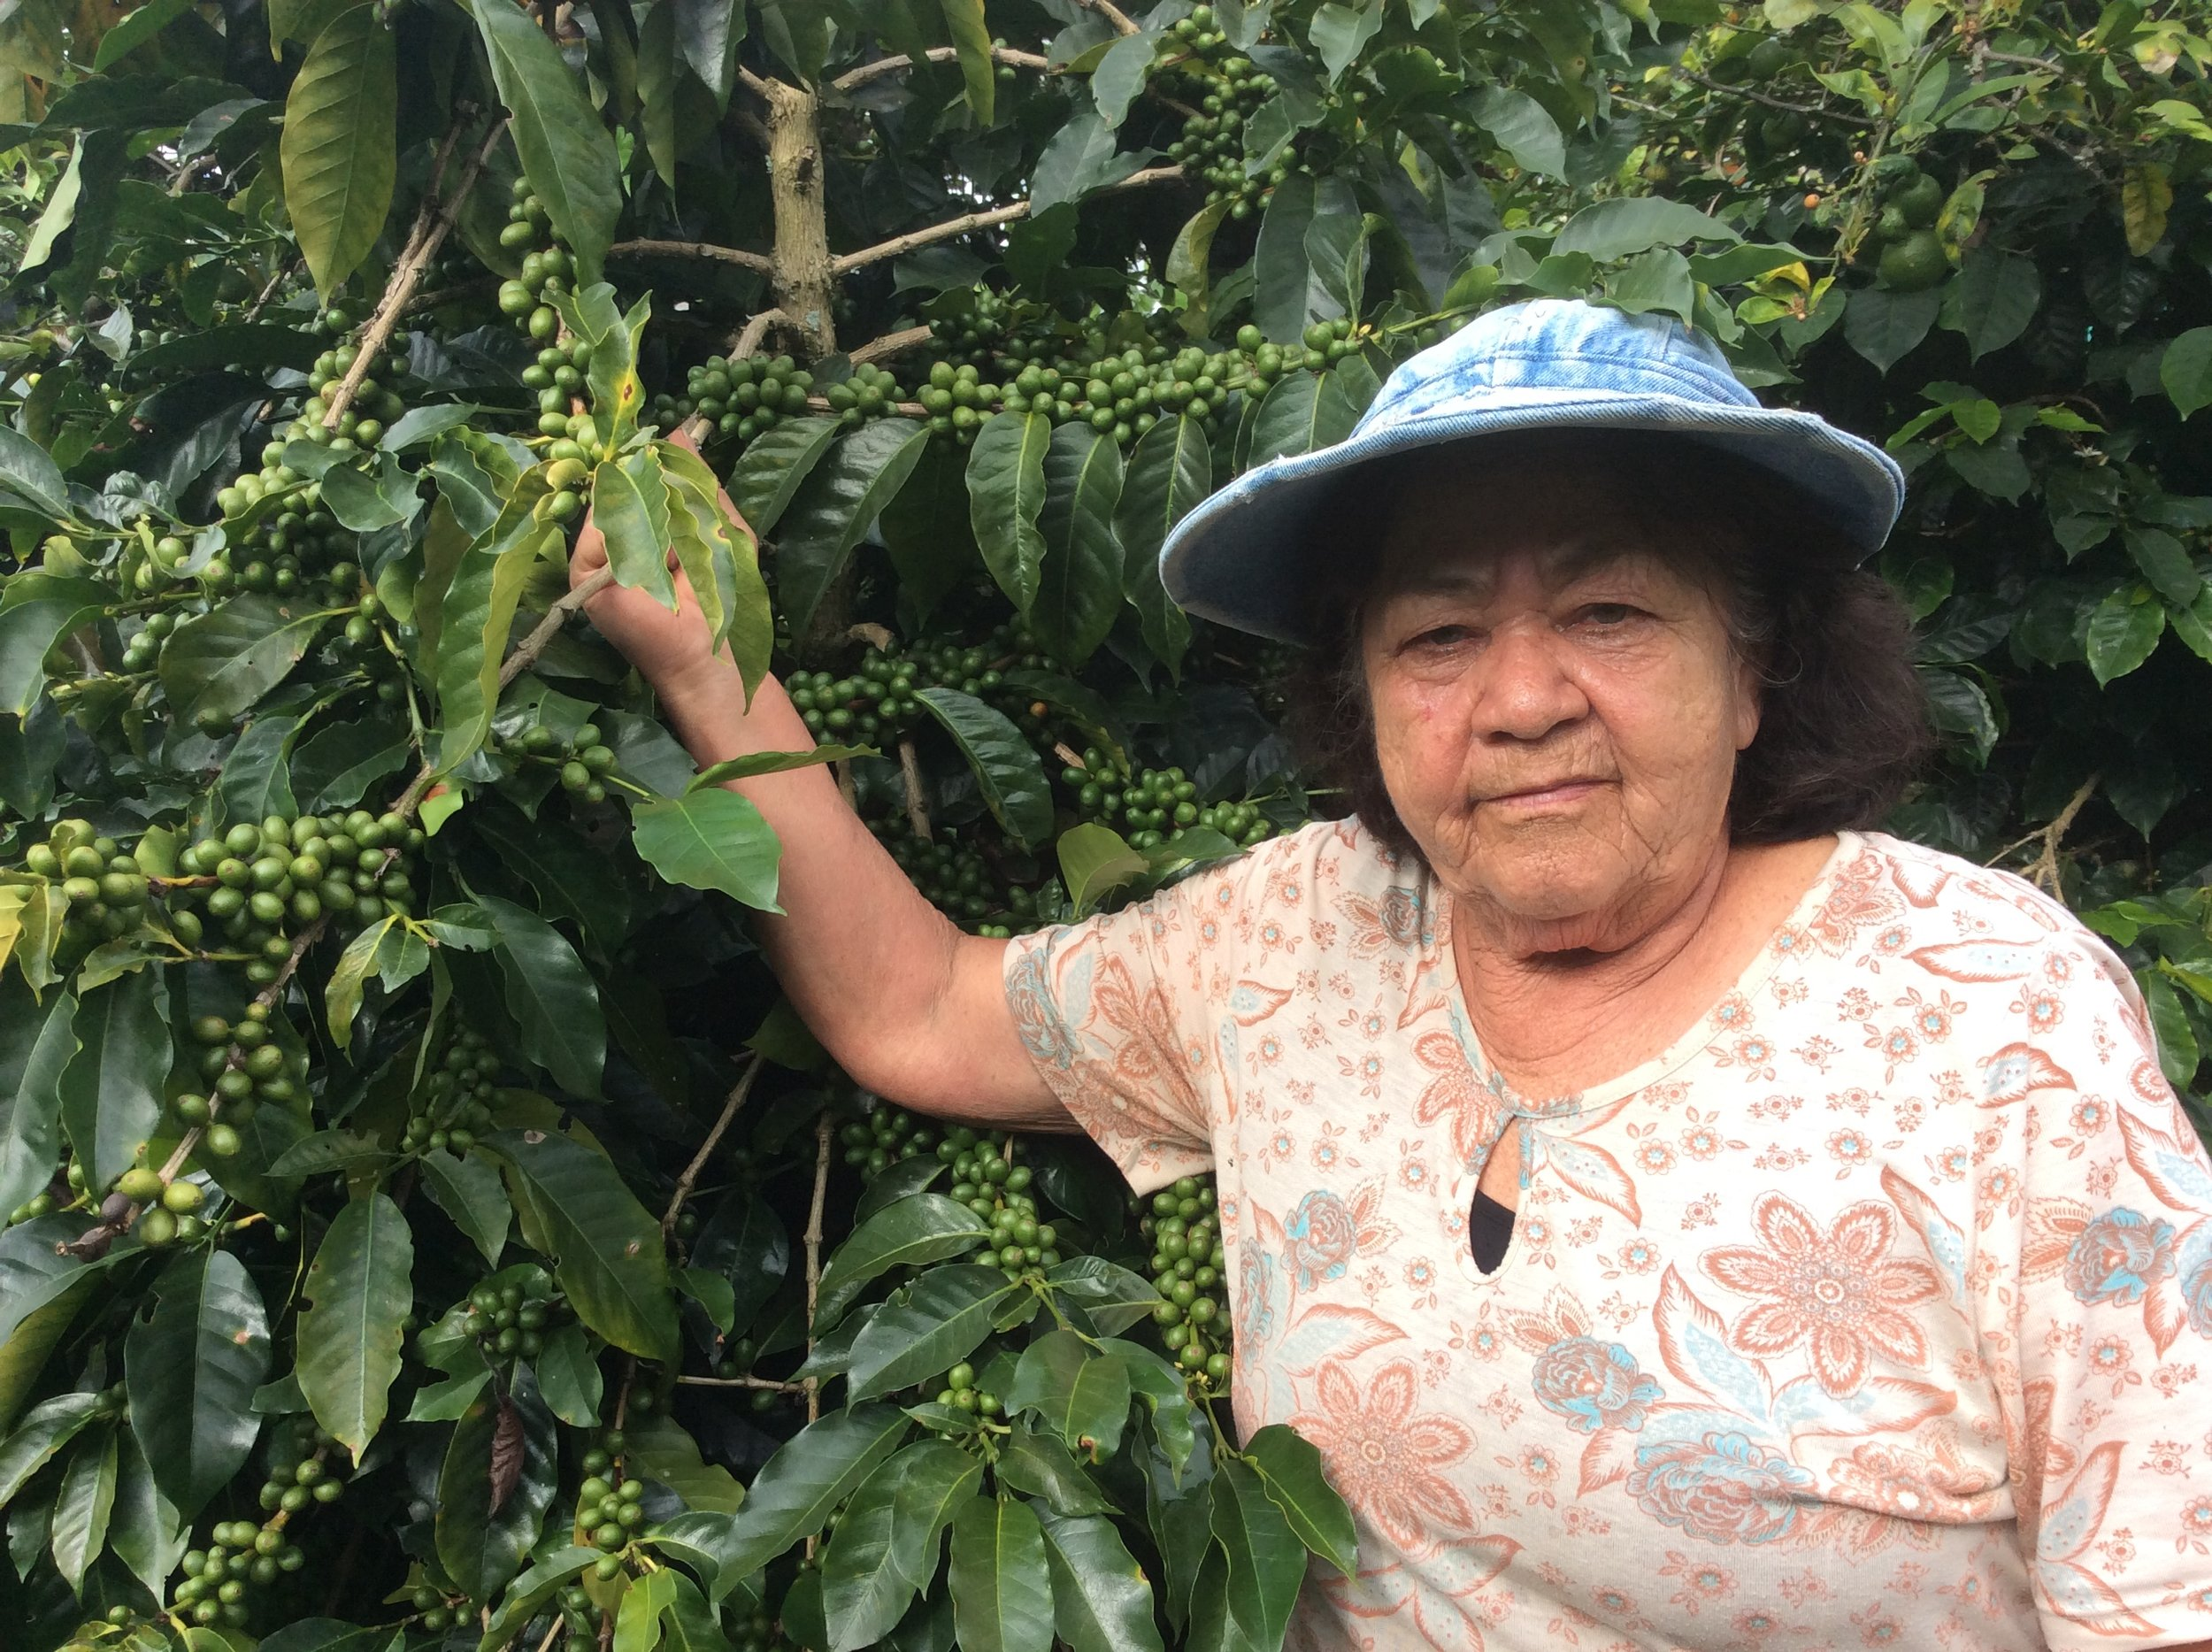 Sister of Adiela, an equal lover of good practices in the cultivation of coffee. Active and receptive to the recommendations for the improvement of the product.